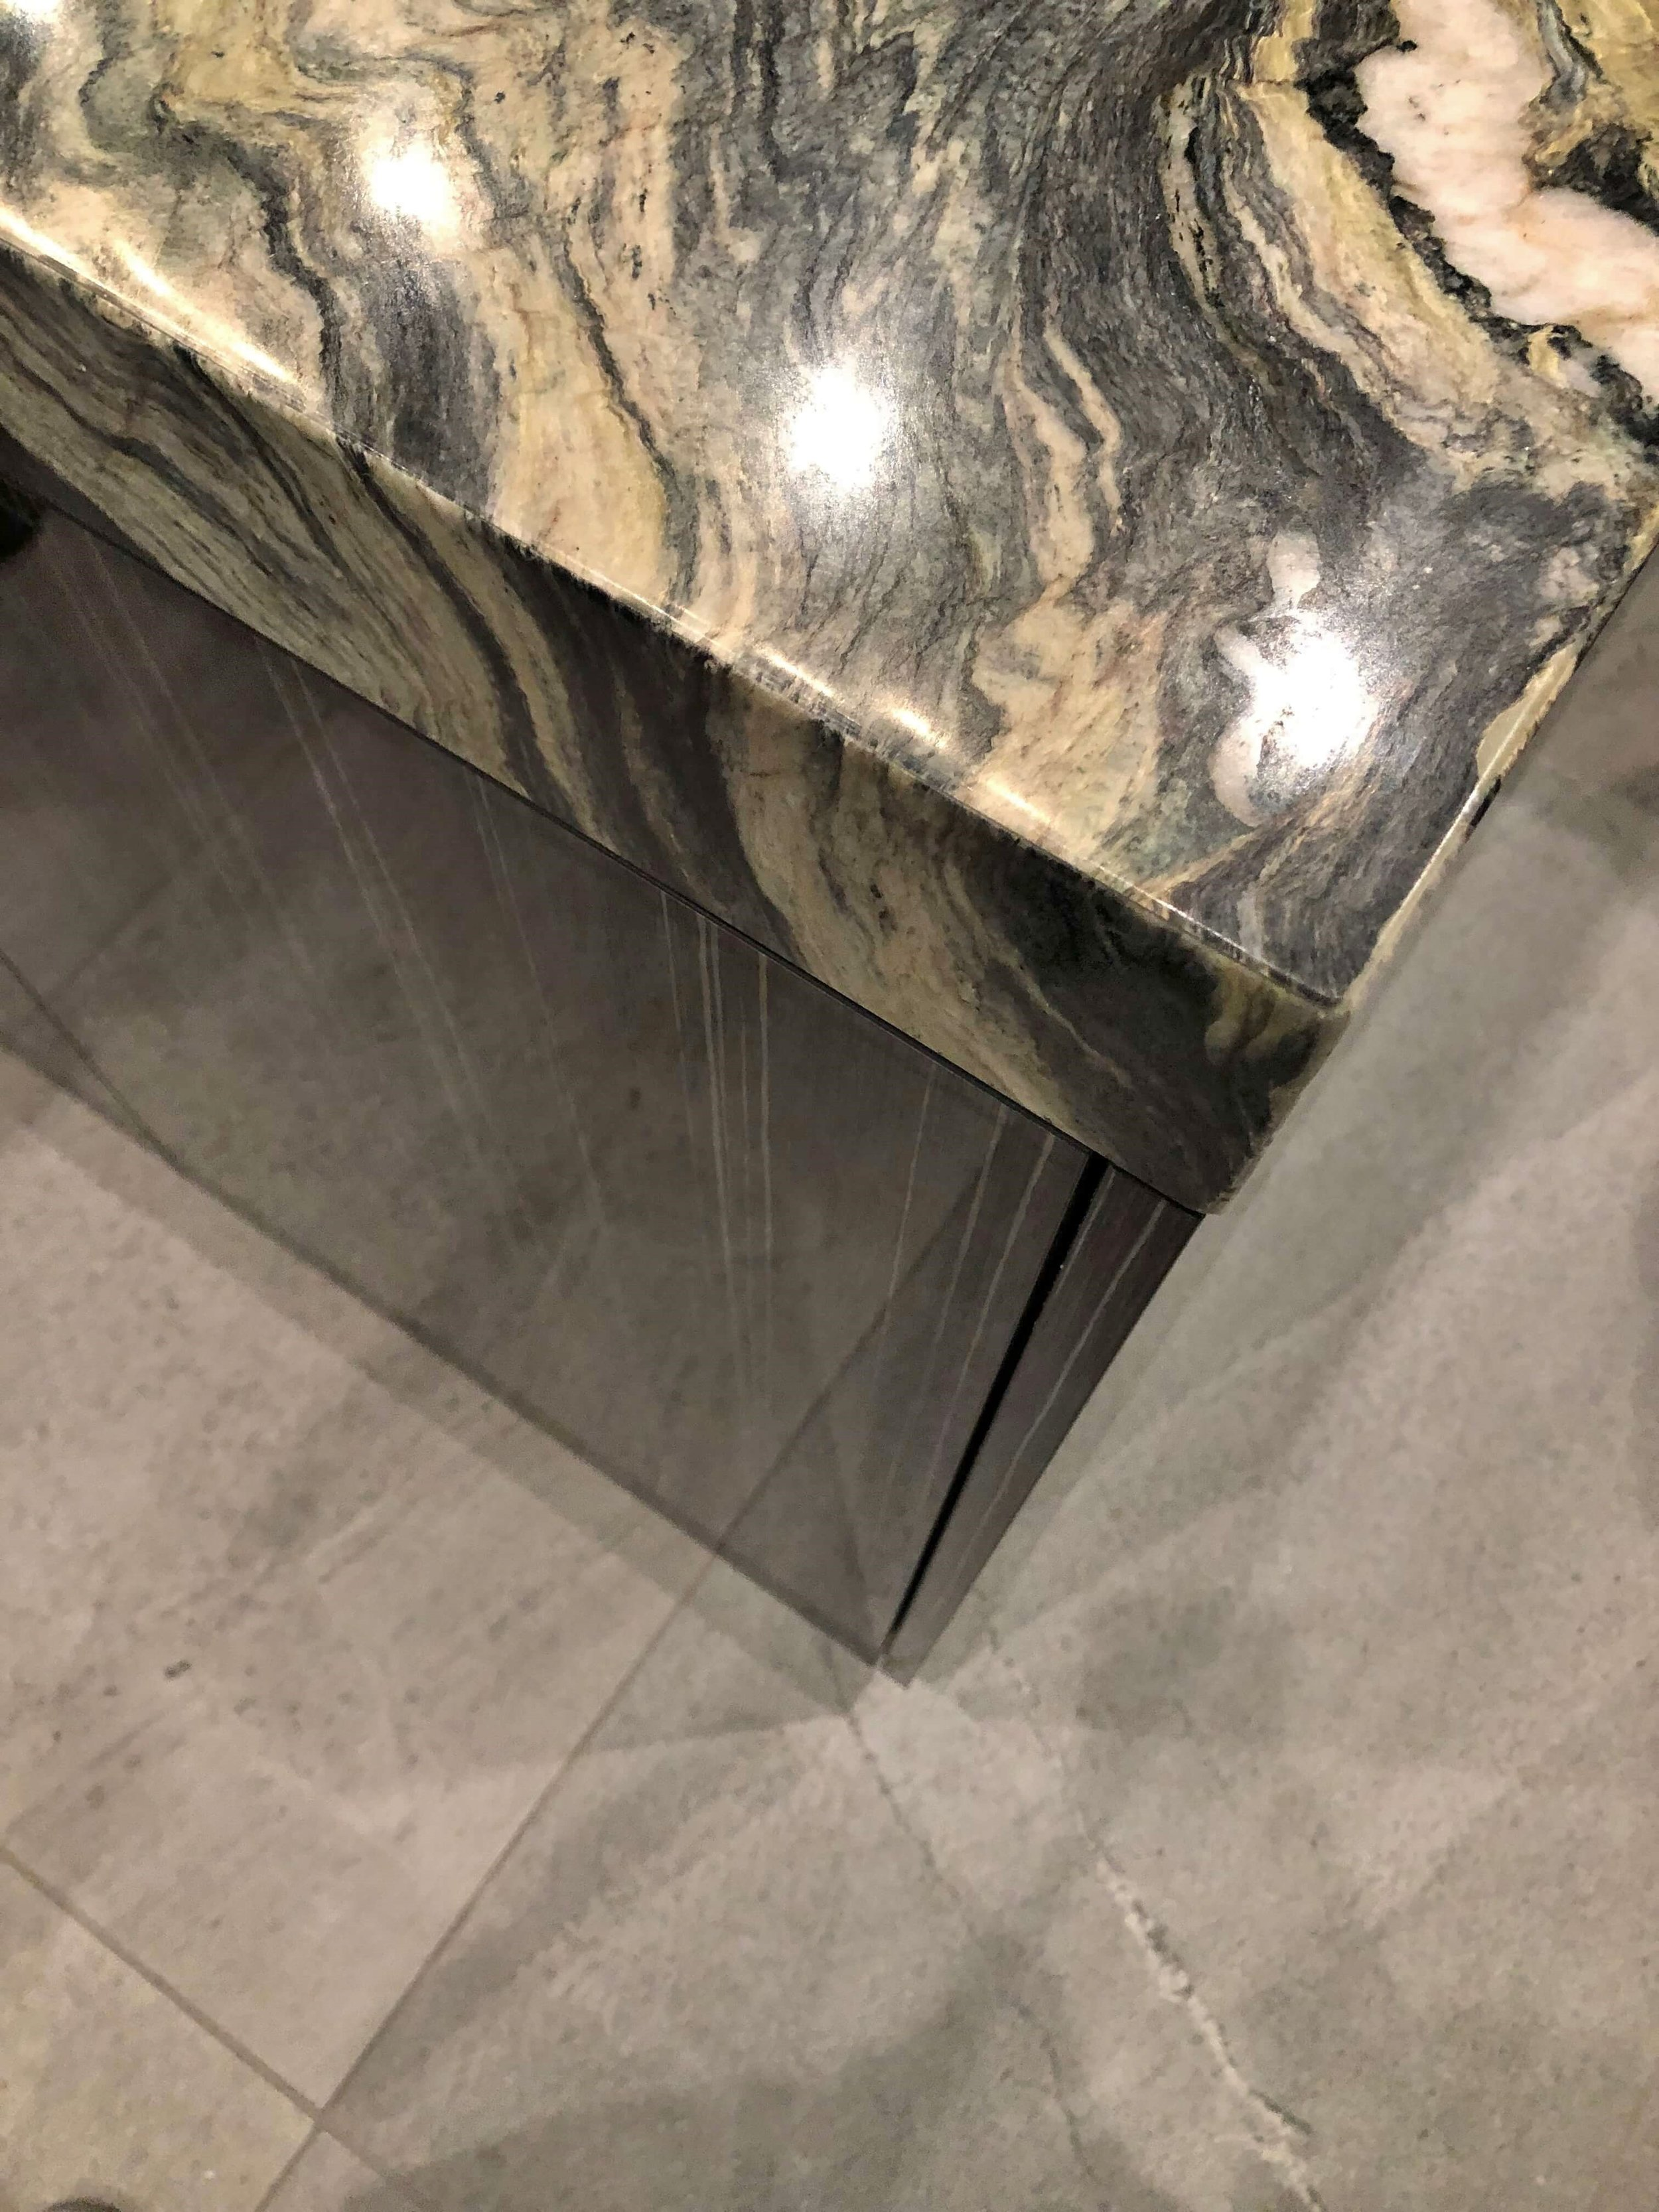 Flush countertop edge on kitchen island, The New American Home Tour 2019 | Designed and built by Sun West Custom Homes #countertop #contemporaryhome